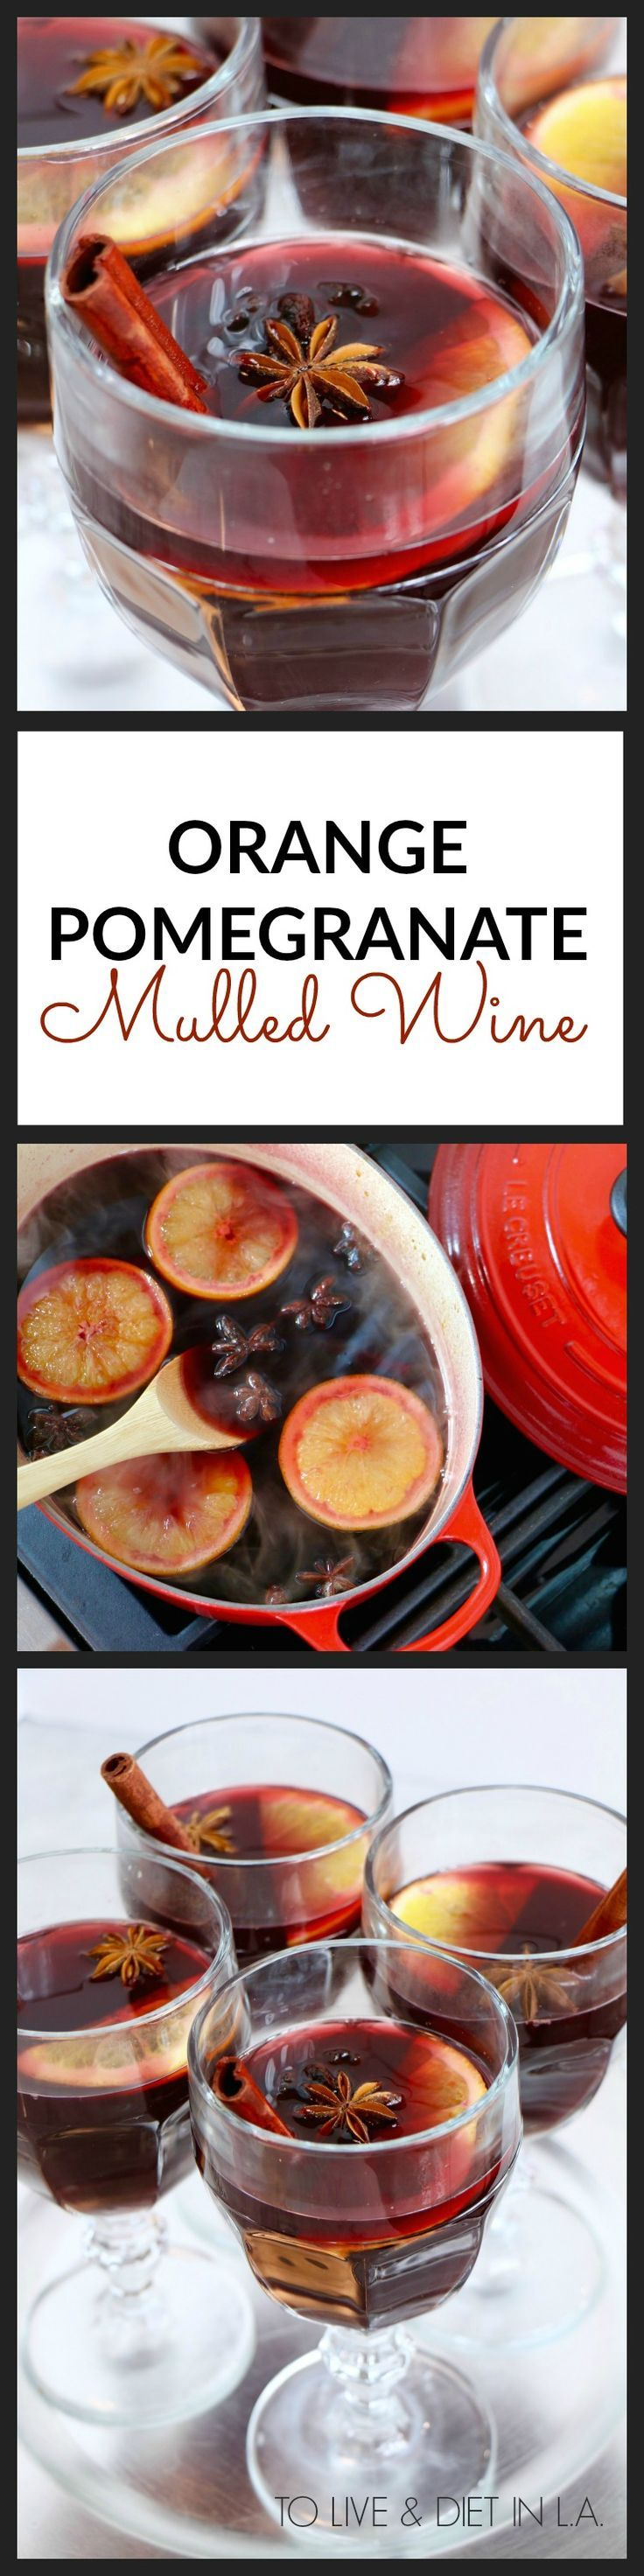 Orange Pomegranate Mulled Wine Recipe - the perfect healthy holiday cocktail.